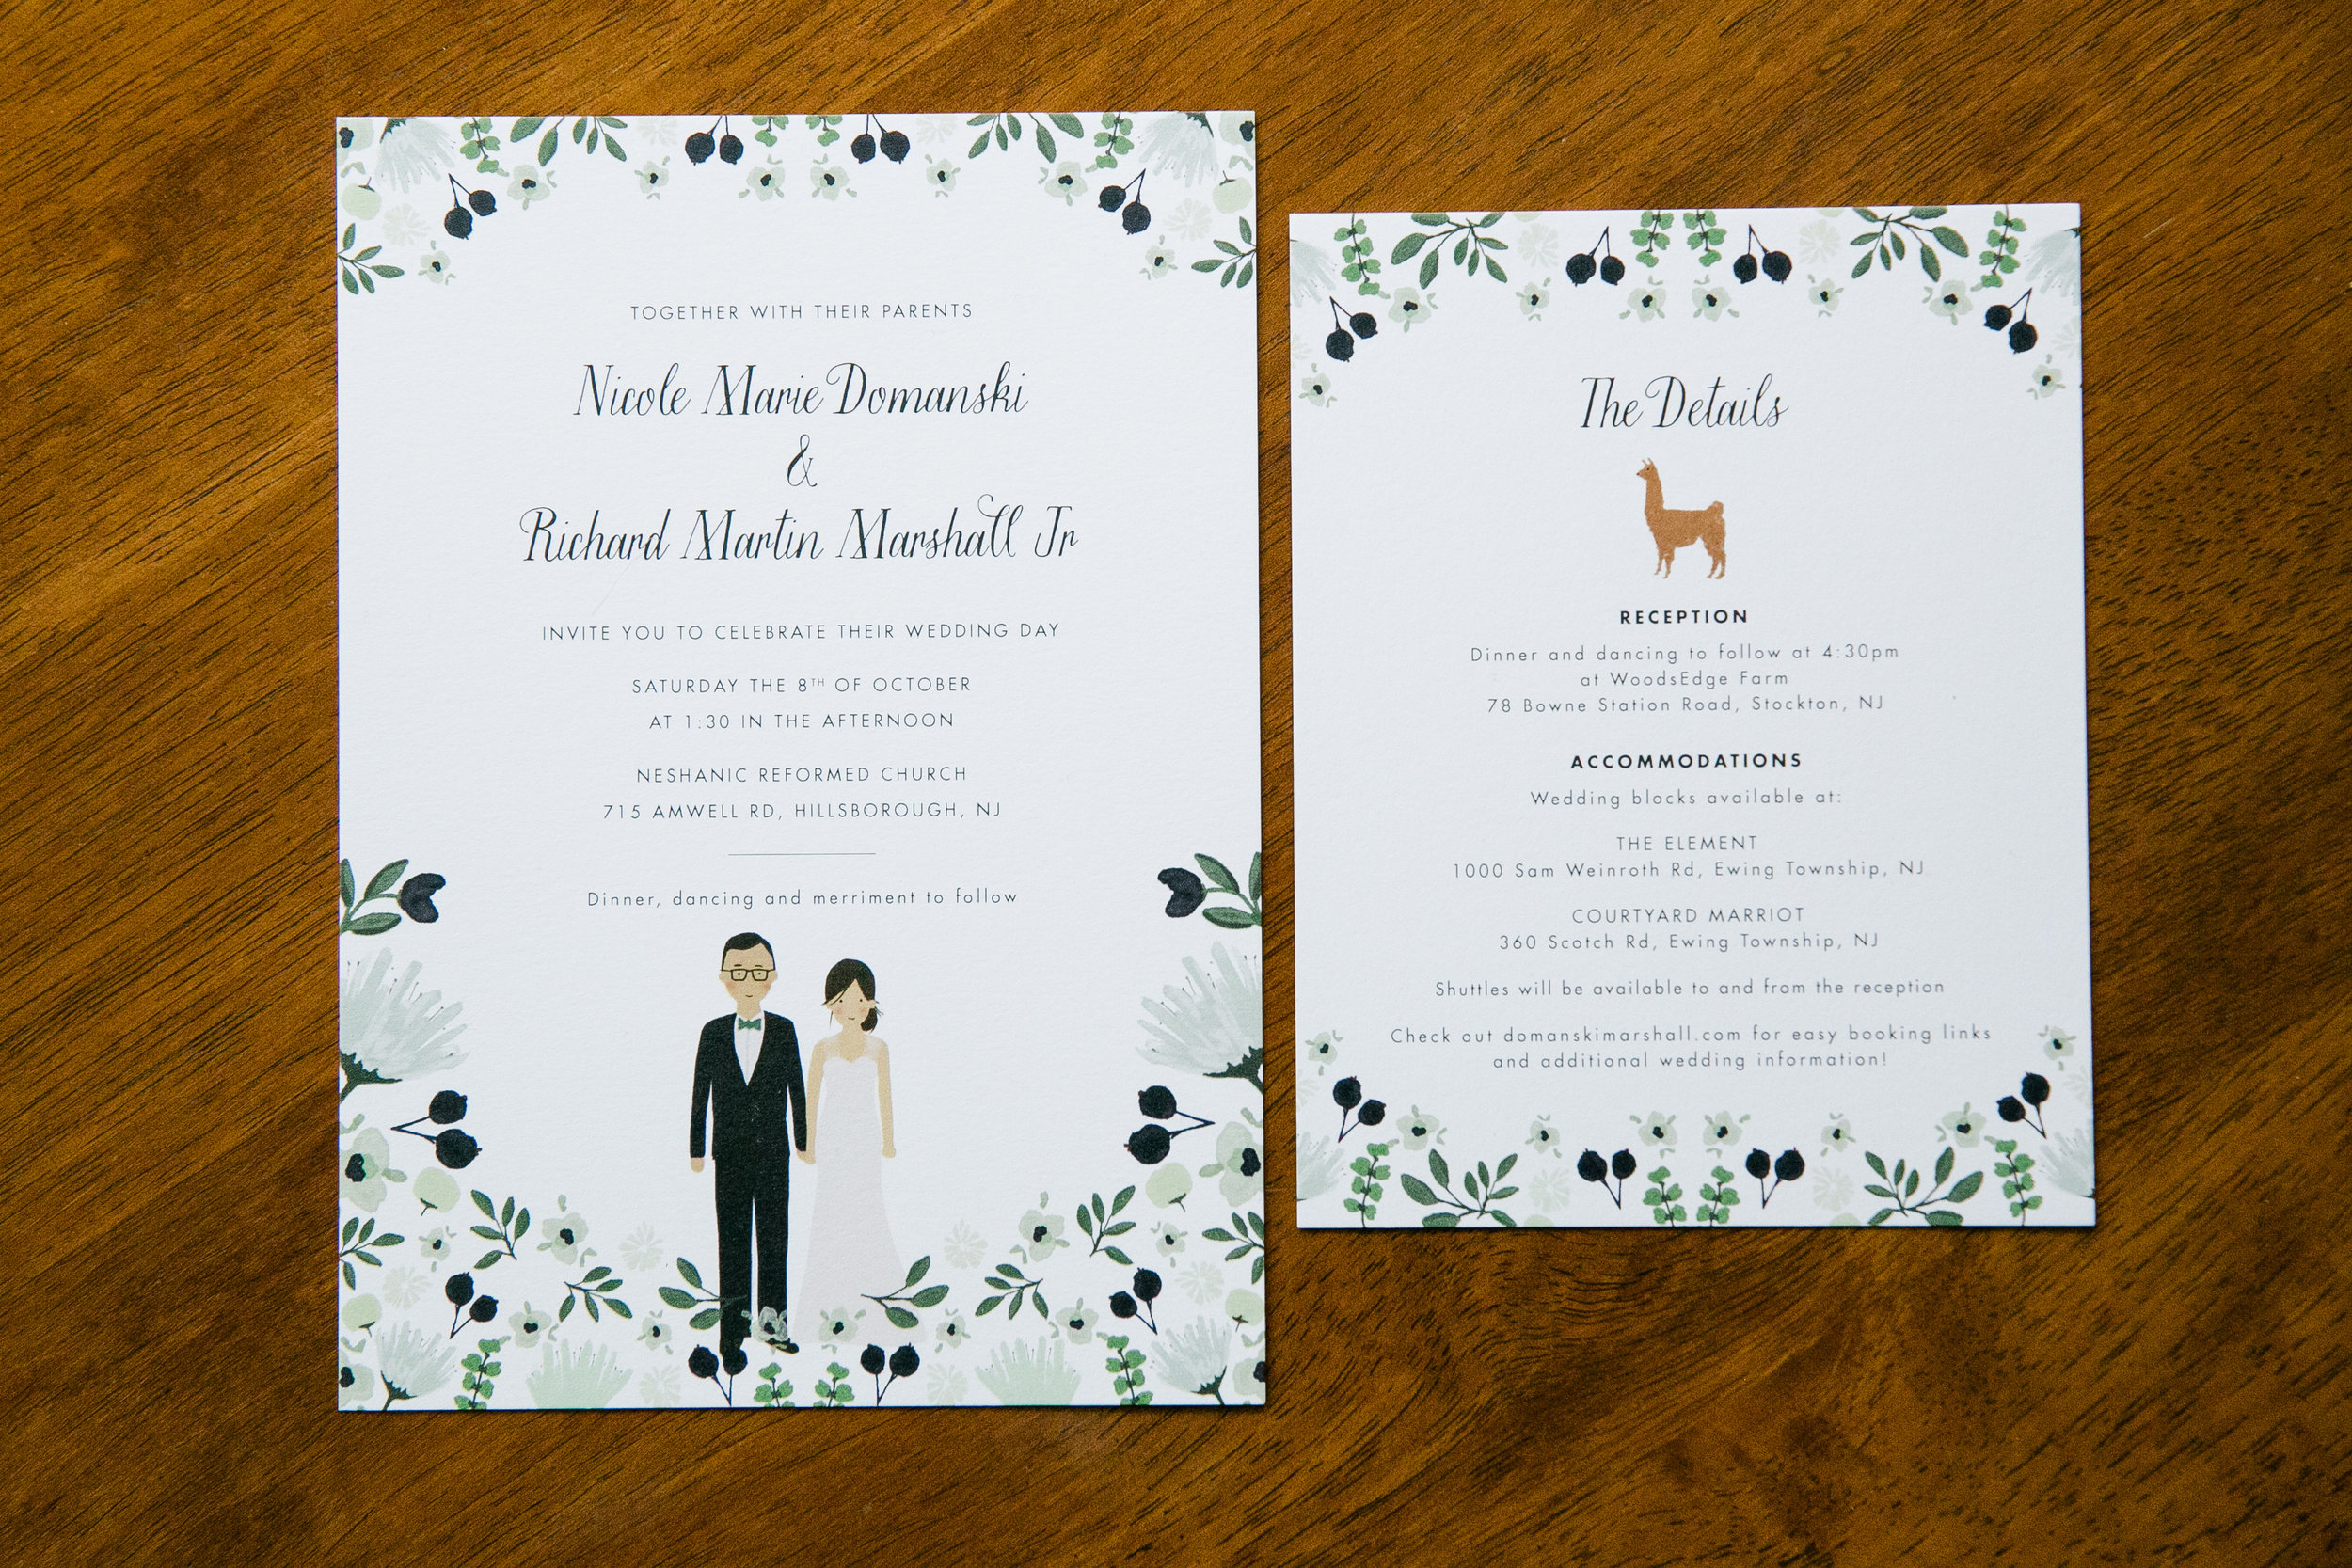 EVJ WEDDING CO 5 Way to add personal touches to your wedding.jpg